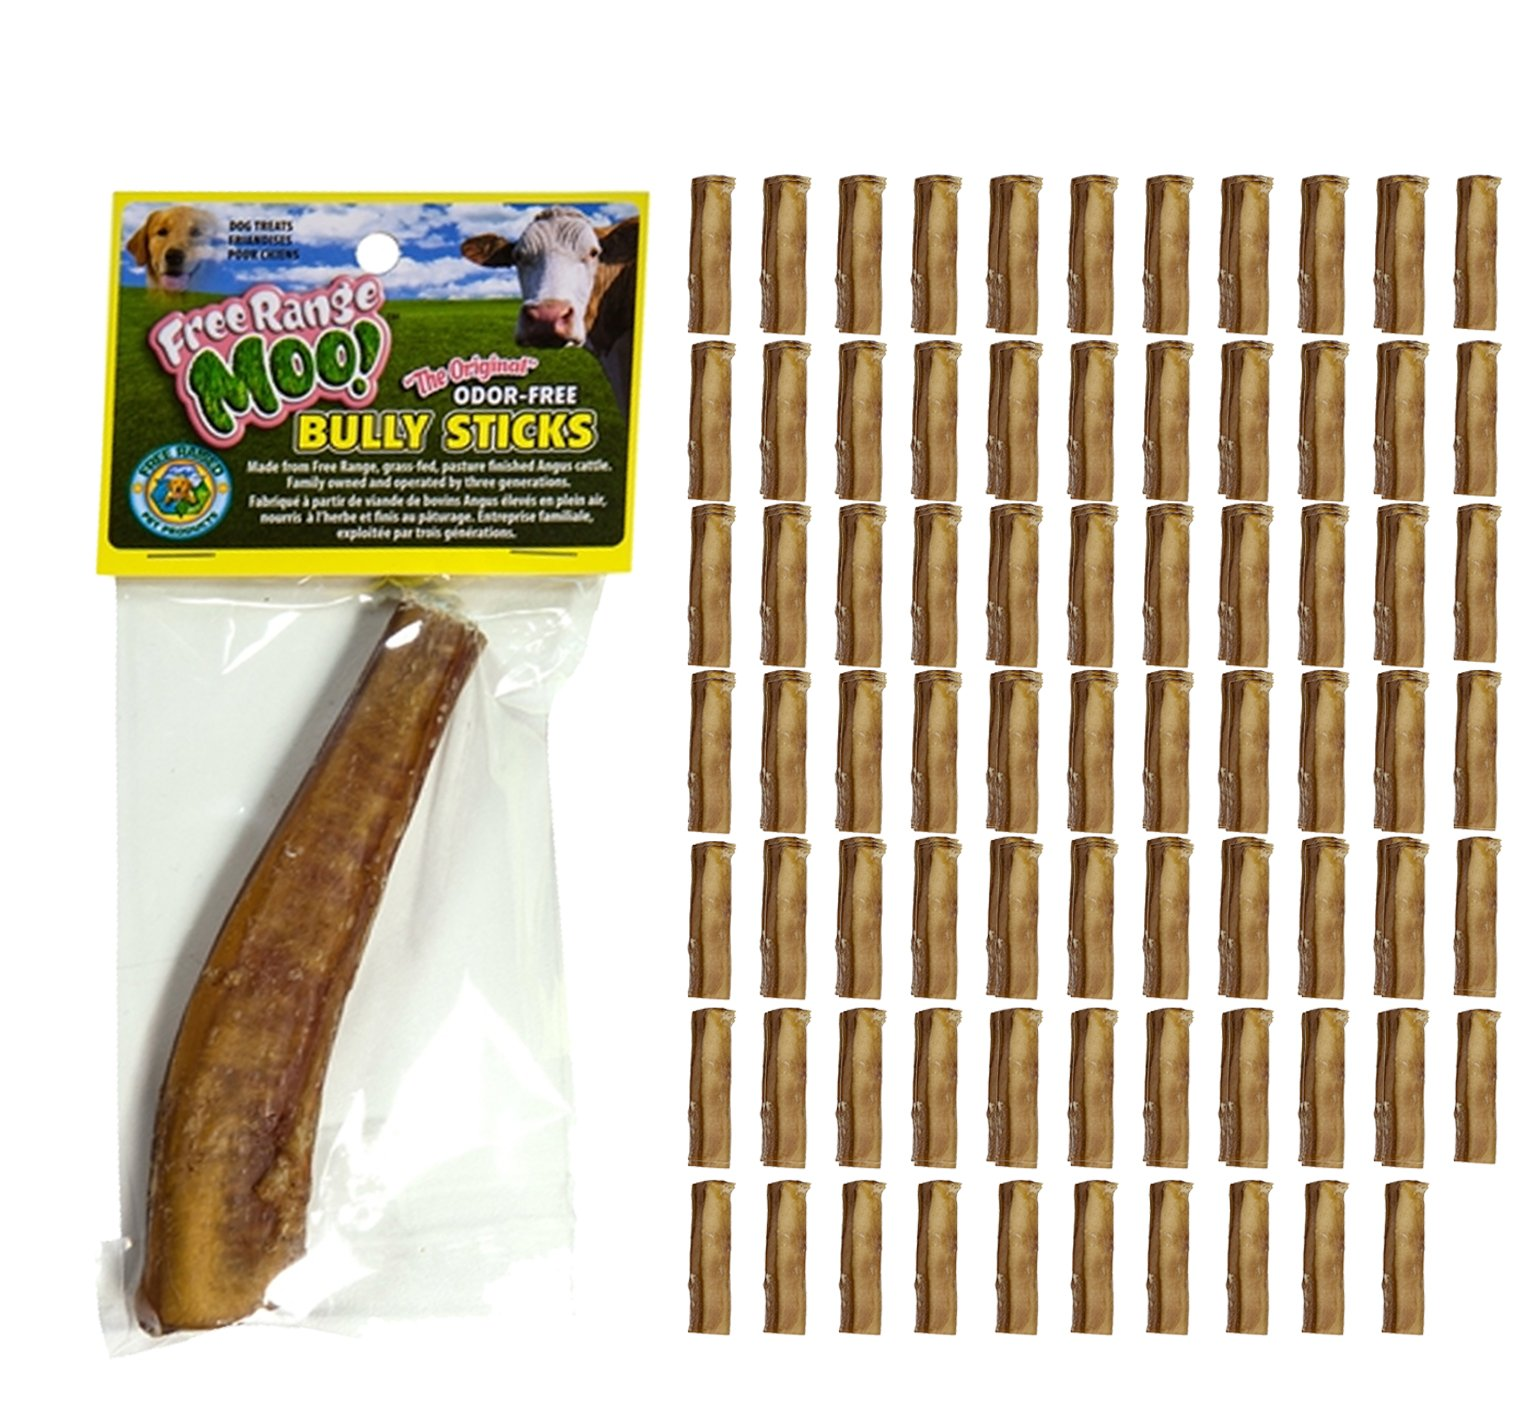 Free Raised Pet Products, 5-6 inch Monster Bully Sticks, 80 Pack by Free Range Monster Bully Sticks